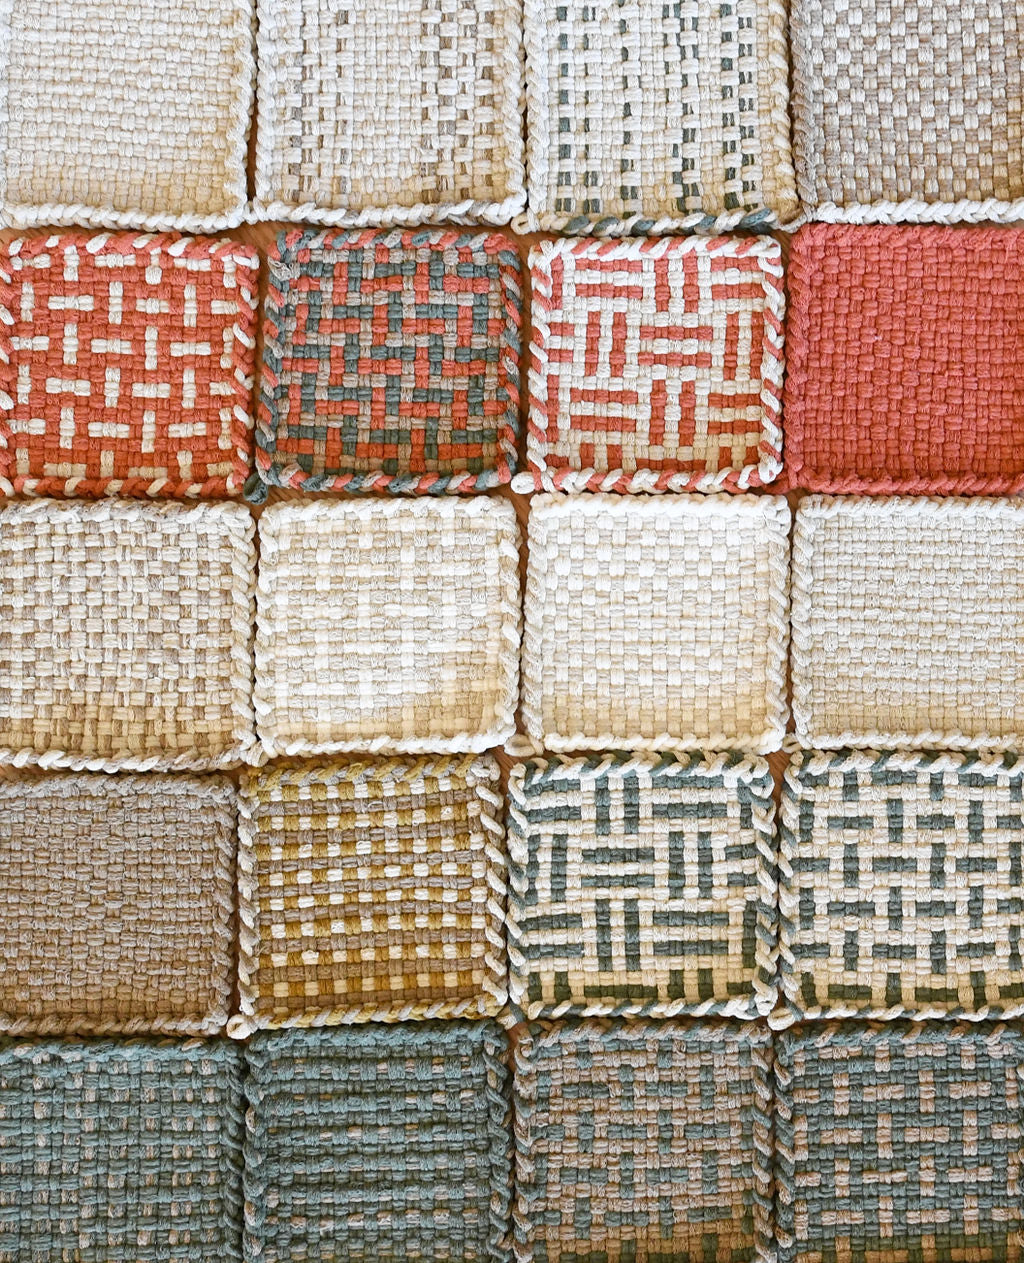 Create Your Own Handwoven Basket - Online Class